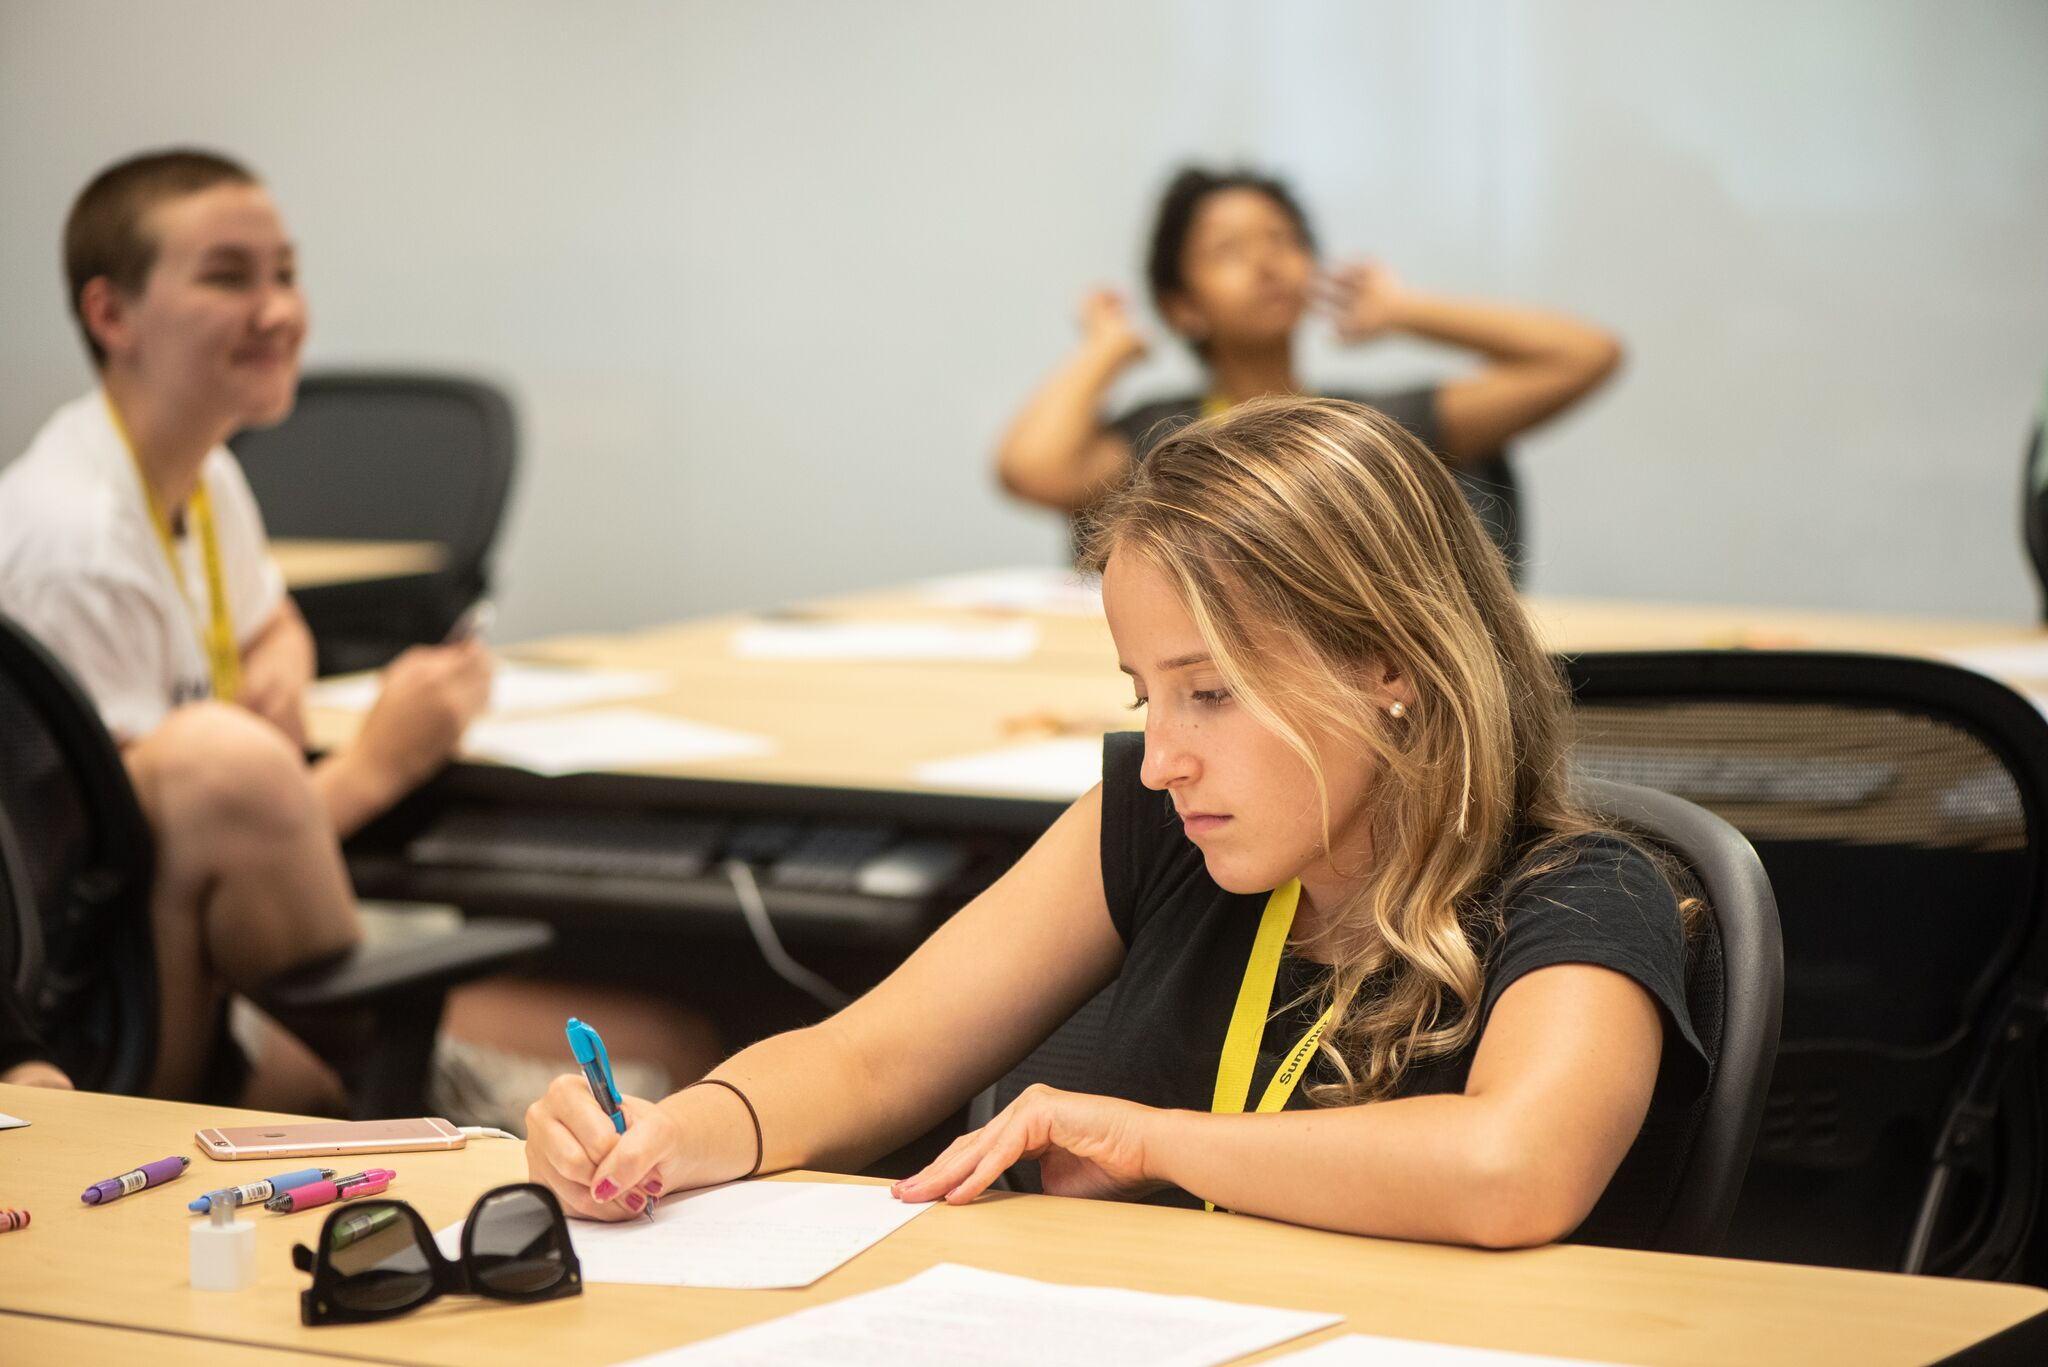 Summer Program - Writing | Smith Precollege Summer Programs: College Admission Workshop